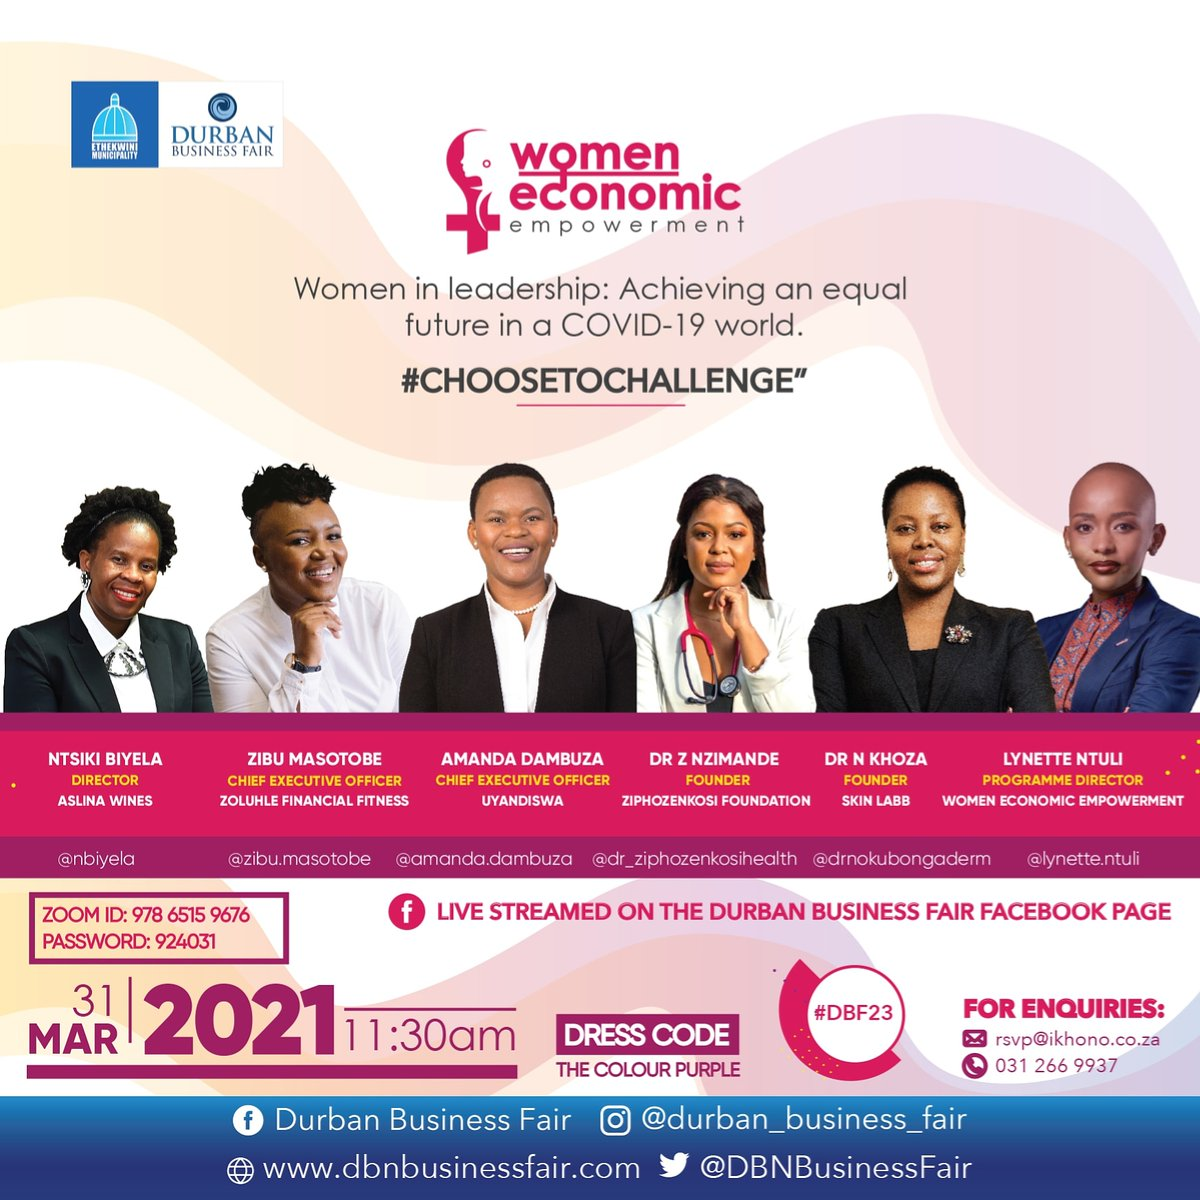 📅 5 DAYS TO GO till the first & most anticipated Women Event of the calendar takes place, & YOU are invited🎟️!  JOIN US via the Zoom link or by watching the Facebook stream!   📆 31 March 2021 ⏰ 11:30am 📌 Zoom & Facebook 🎟️ FREE  #CHOOSETOCHALLENGE  #DBF23 #WomenInConversation